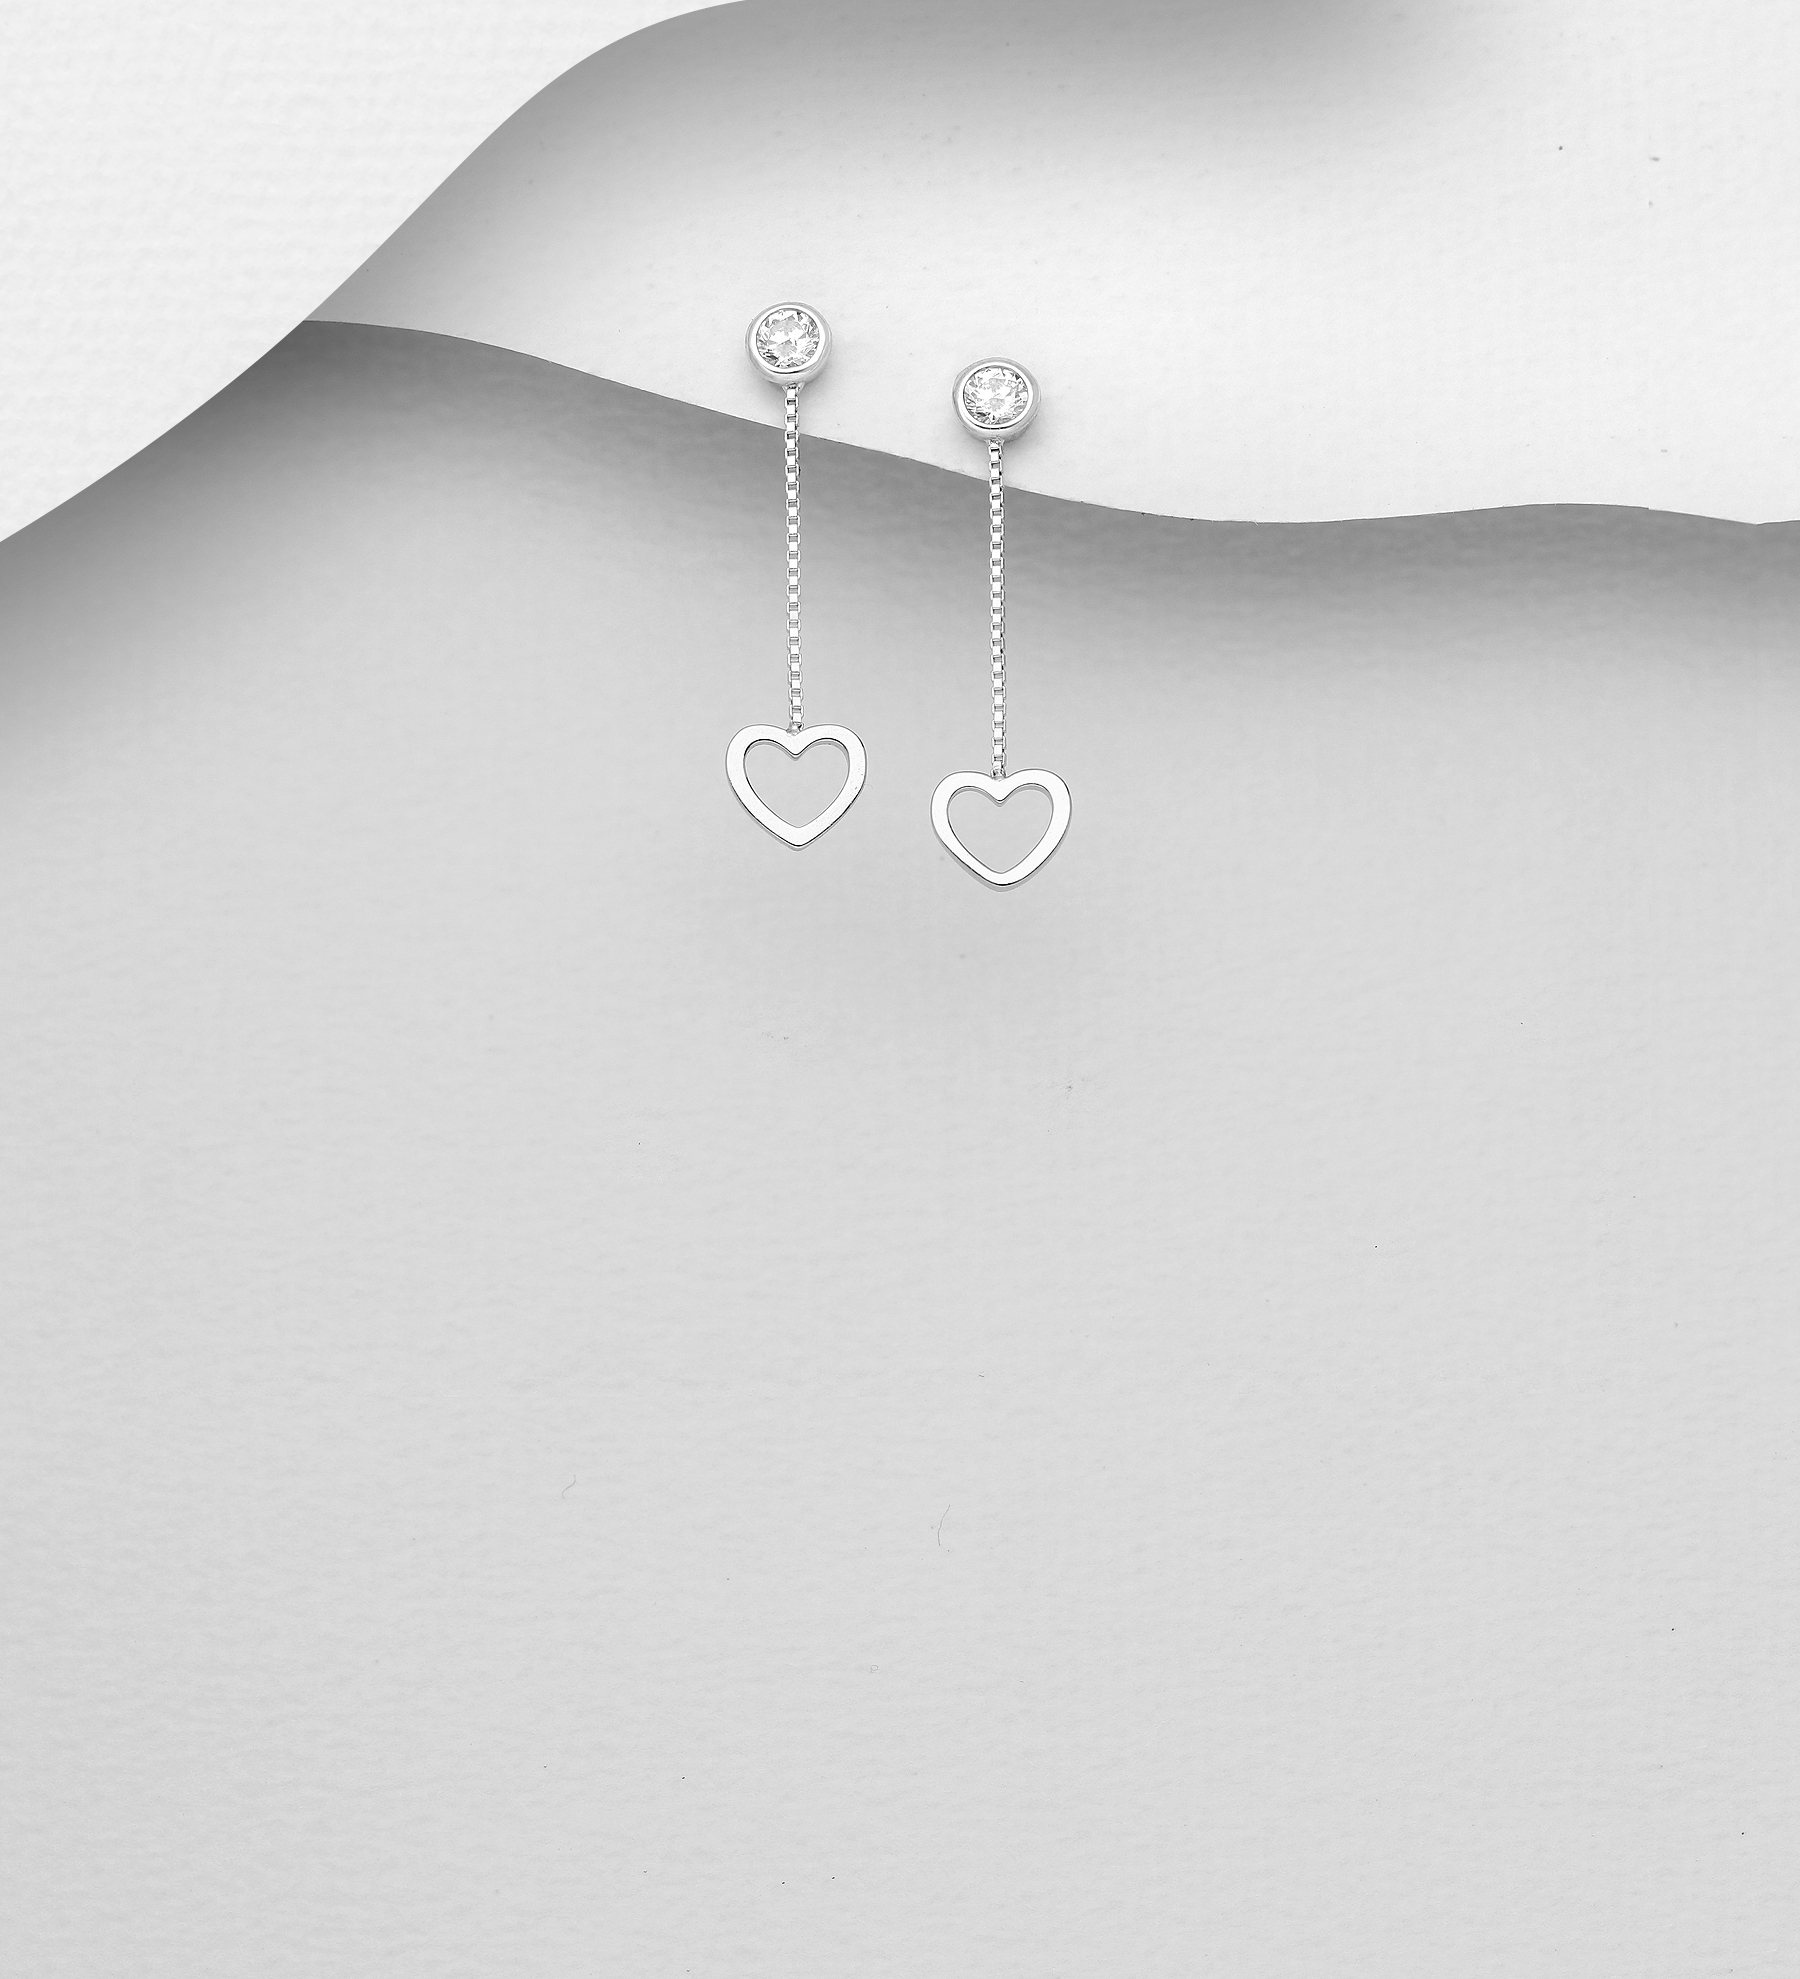 701-23868K - 925 Sterling Silver Heart Push-Back Earrings Decorated With CZ